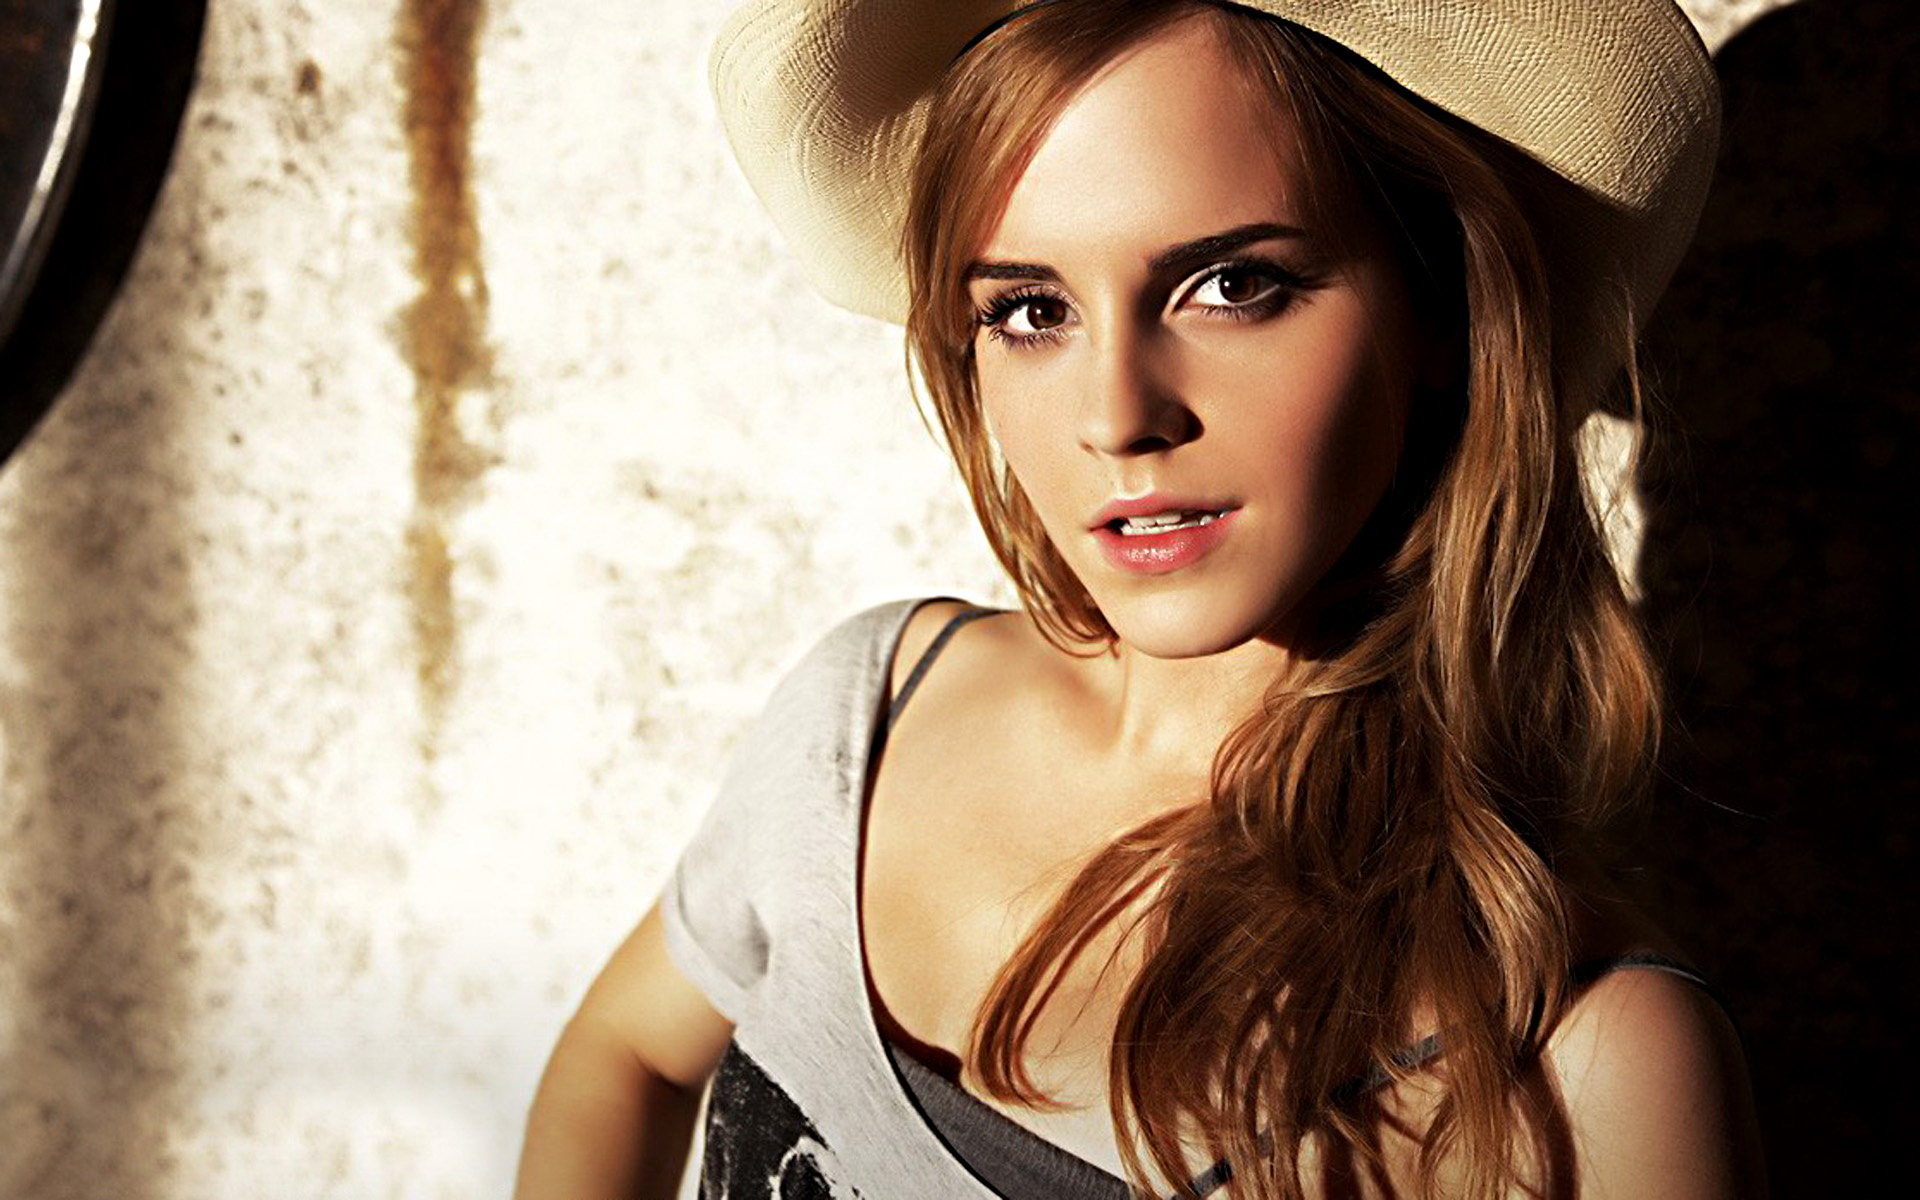 attractive emma watson hd wallpapers cool desktop widescreen background images